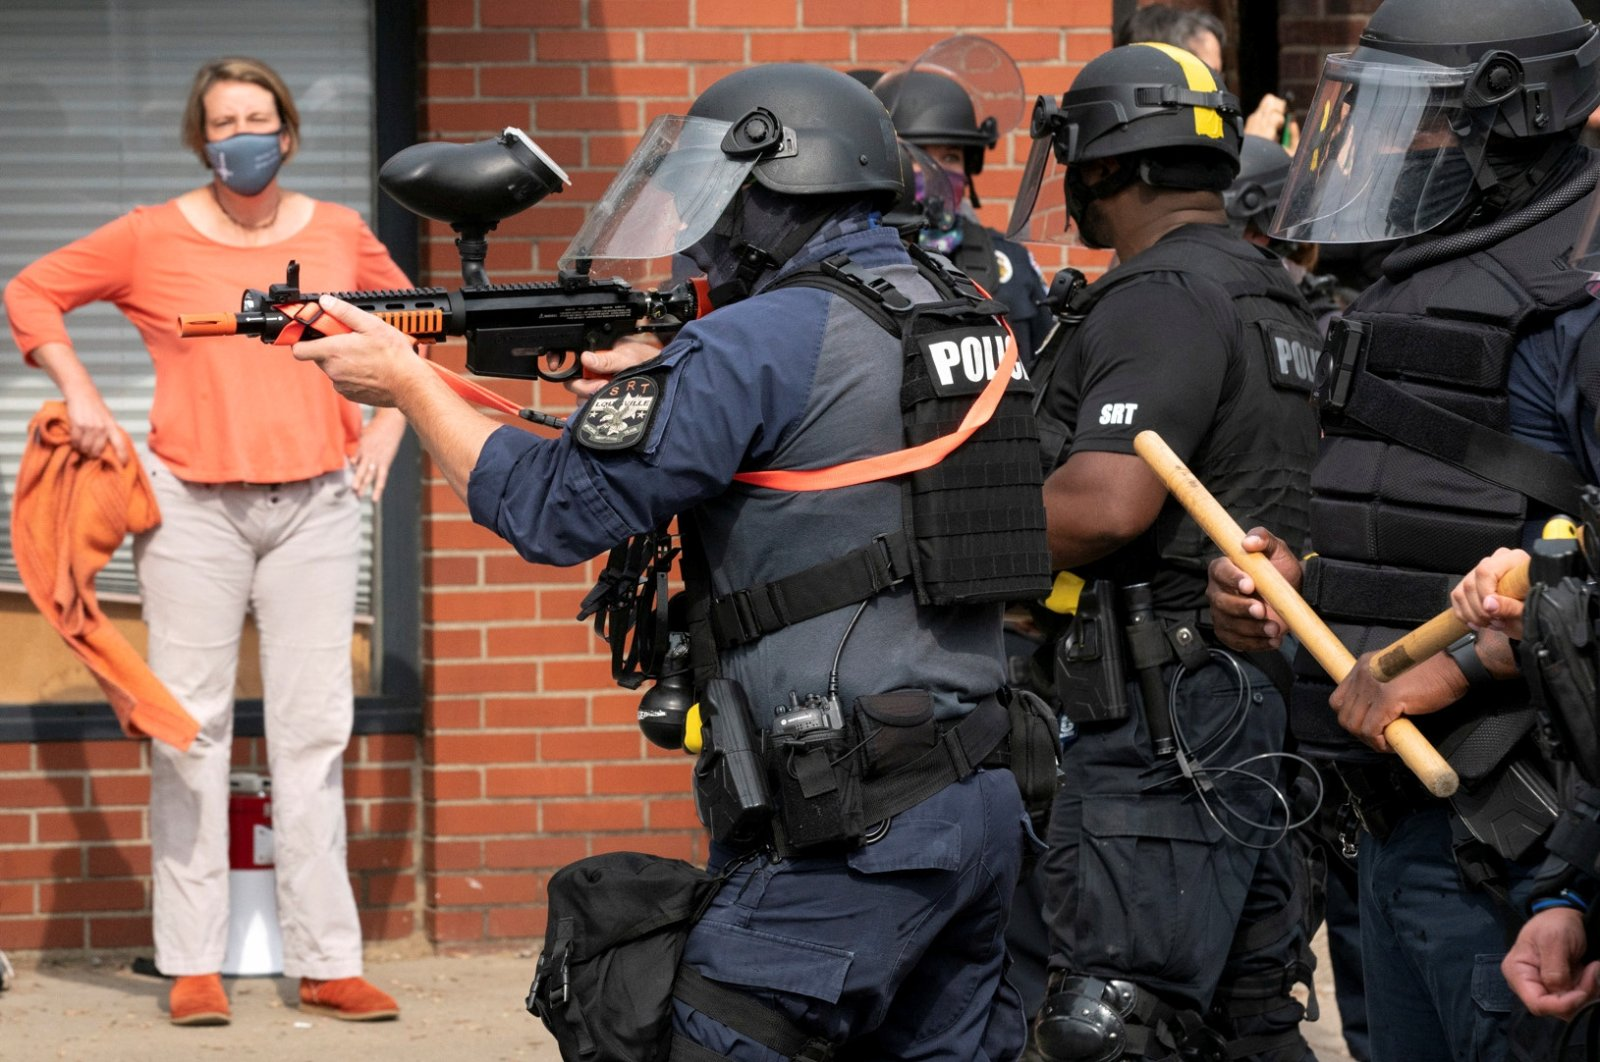 Police fire a pepper ball gun into a crowd during a protest in Louisville, Kentucky, U.S., Sept. 23, 2020. (REUTERS Photo)